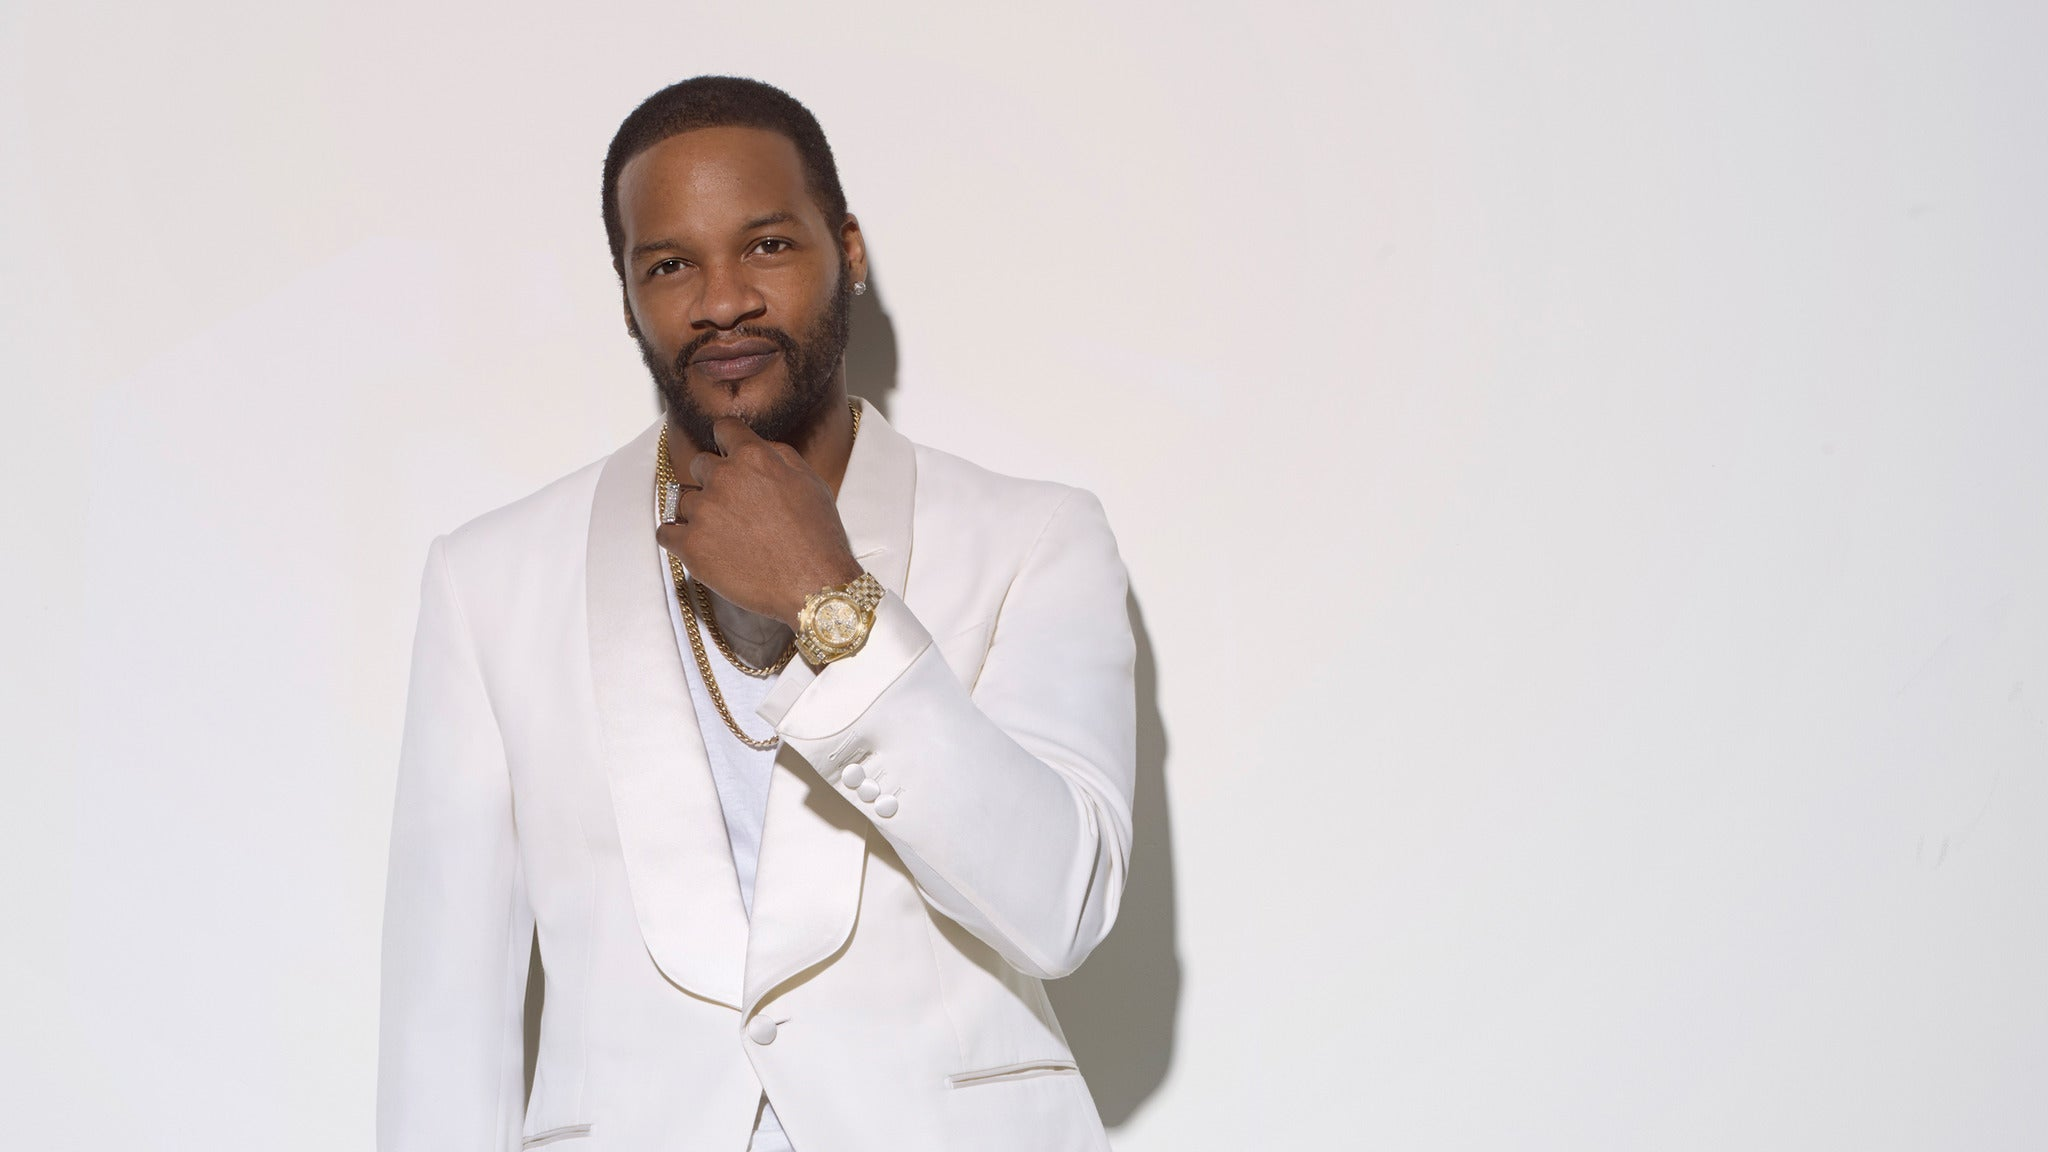 Jaheim at Tuscaloosa Amphitheater